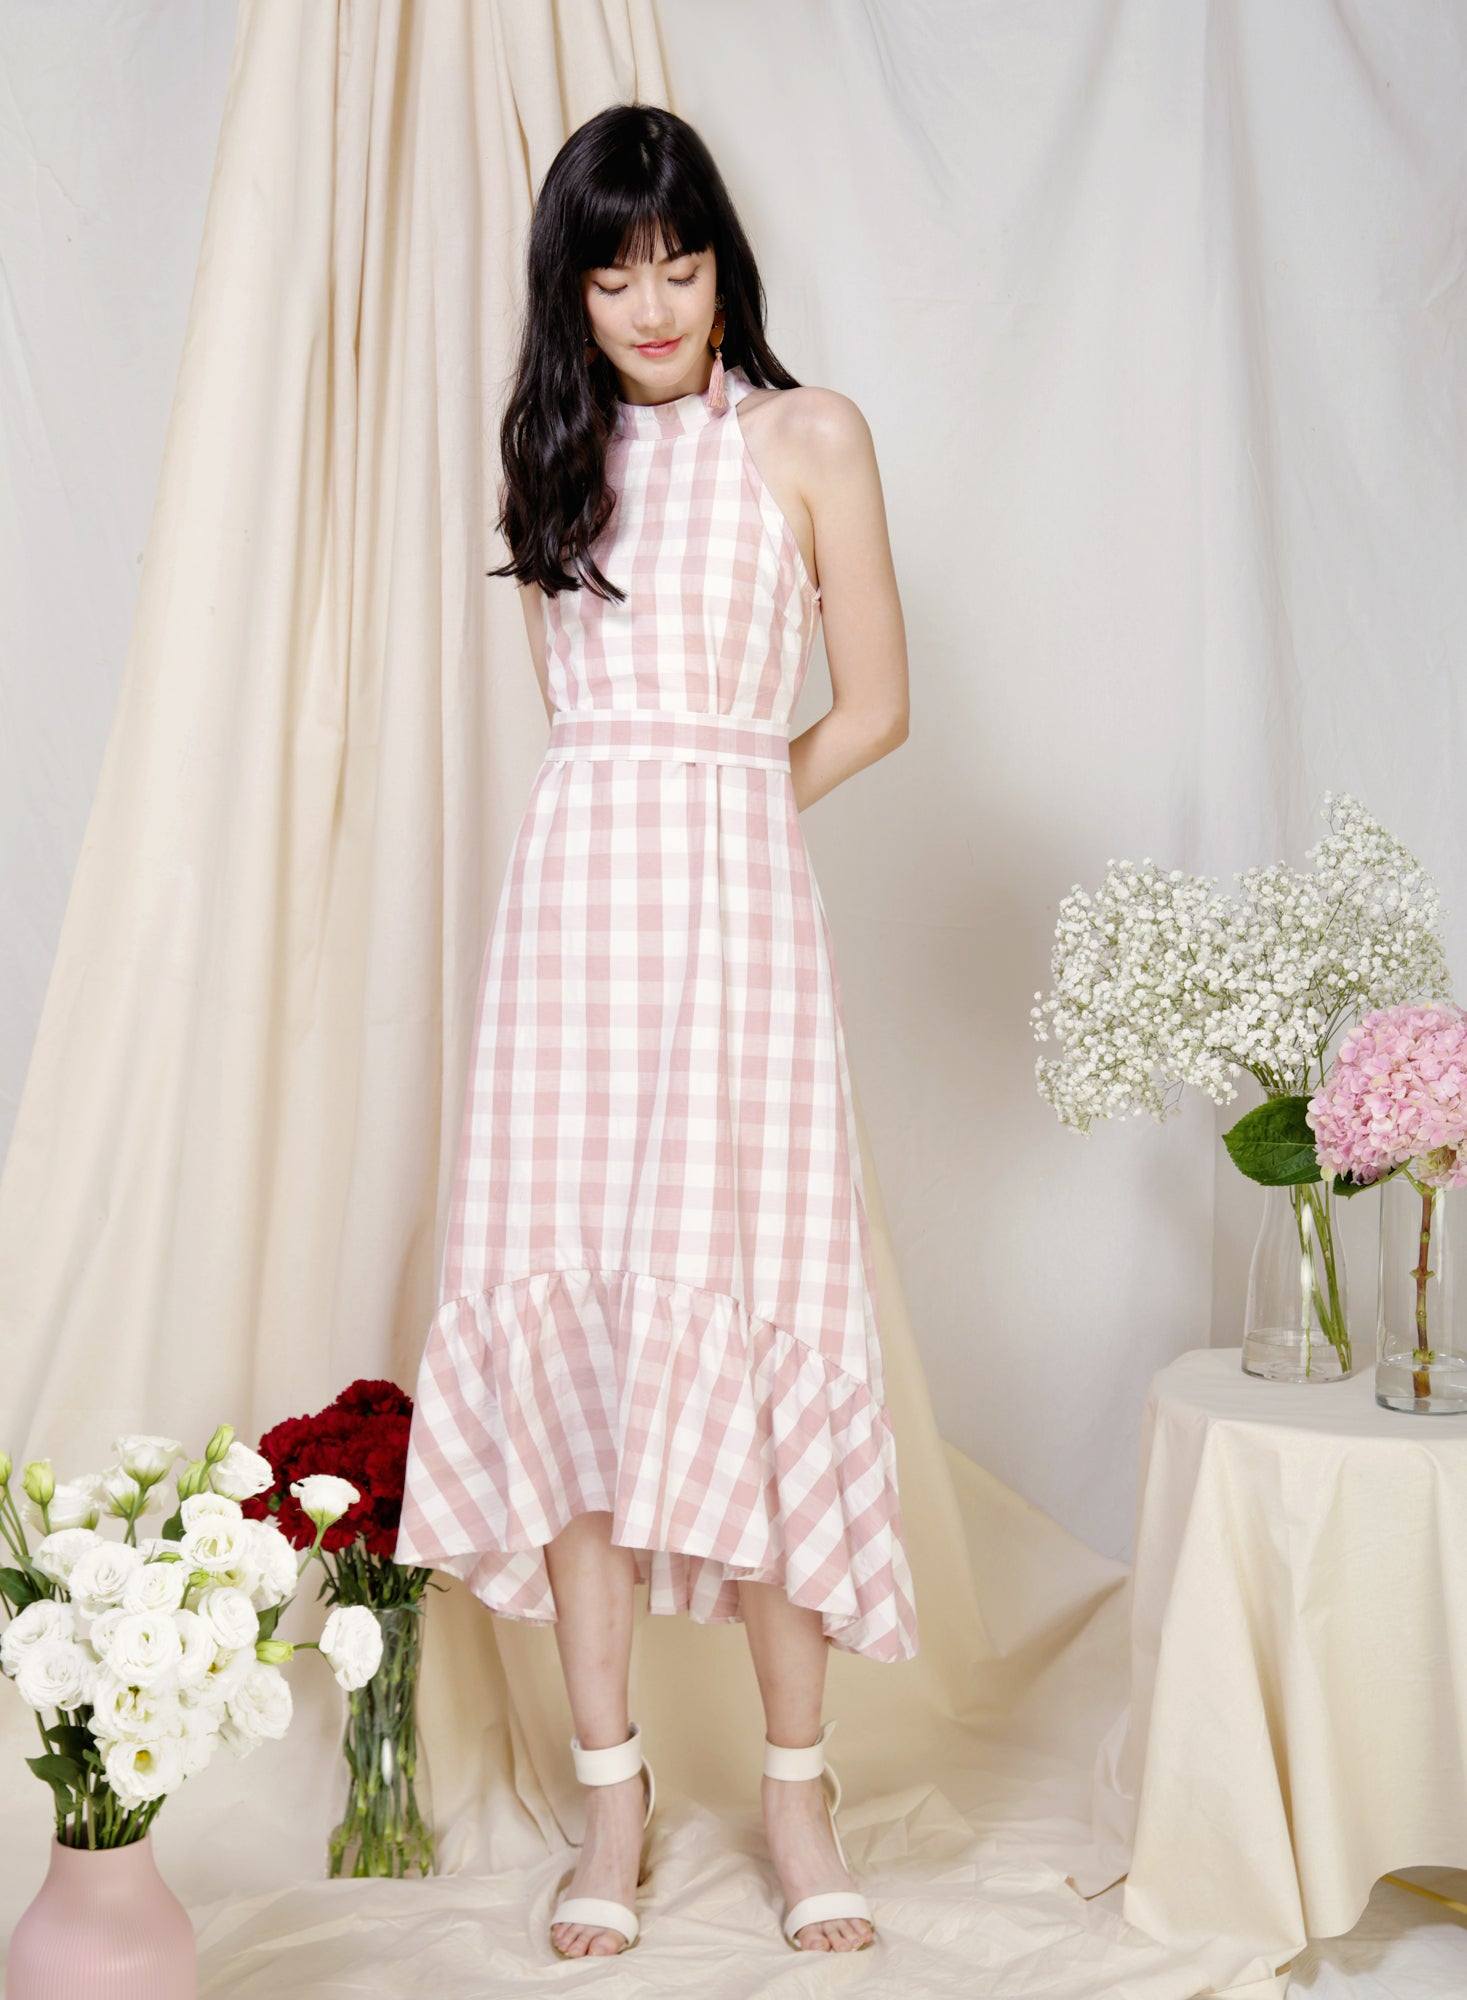 Overture High Neck Ruffle Dress (Pink Gingham) at $ 45.00 only sold at And Well Dressed Online Fashion Store Singapore